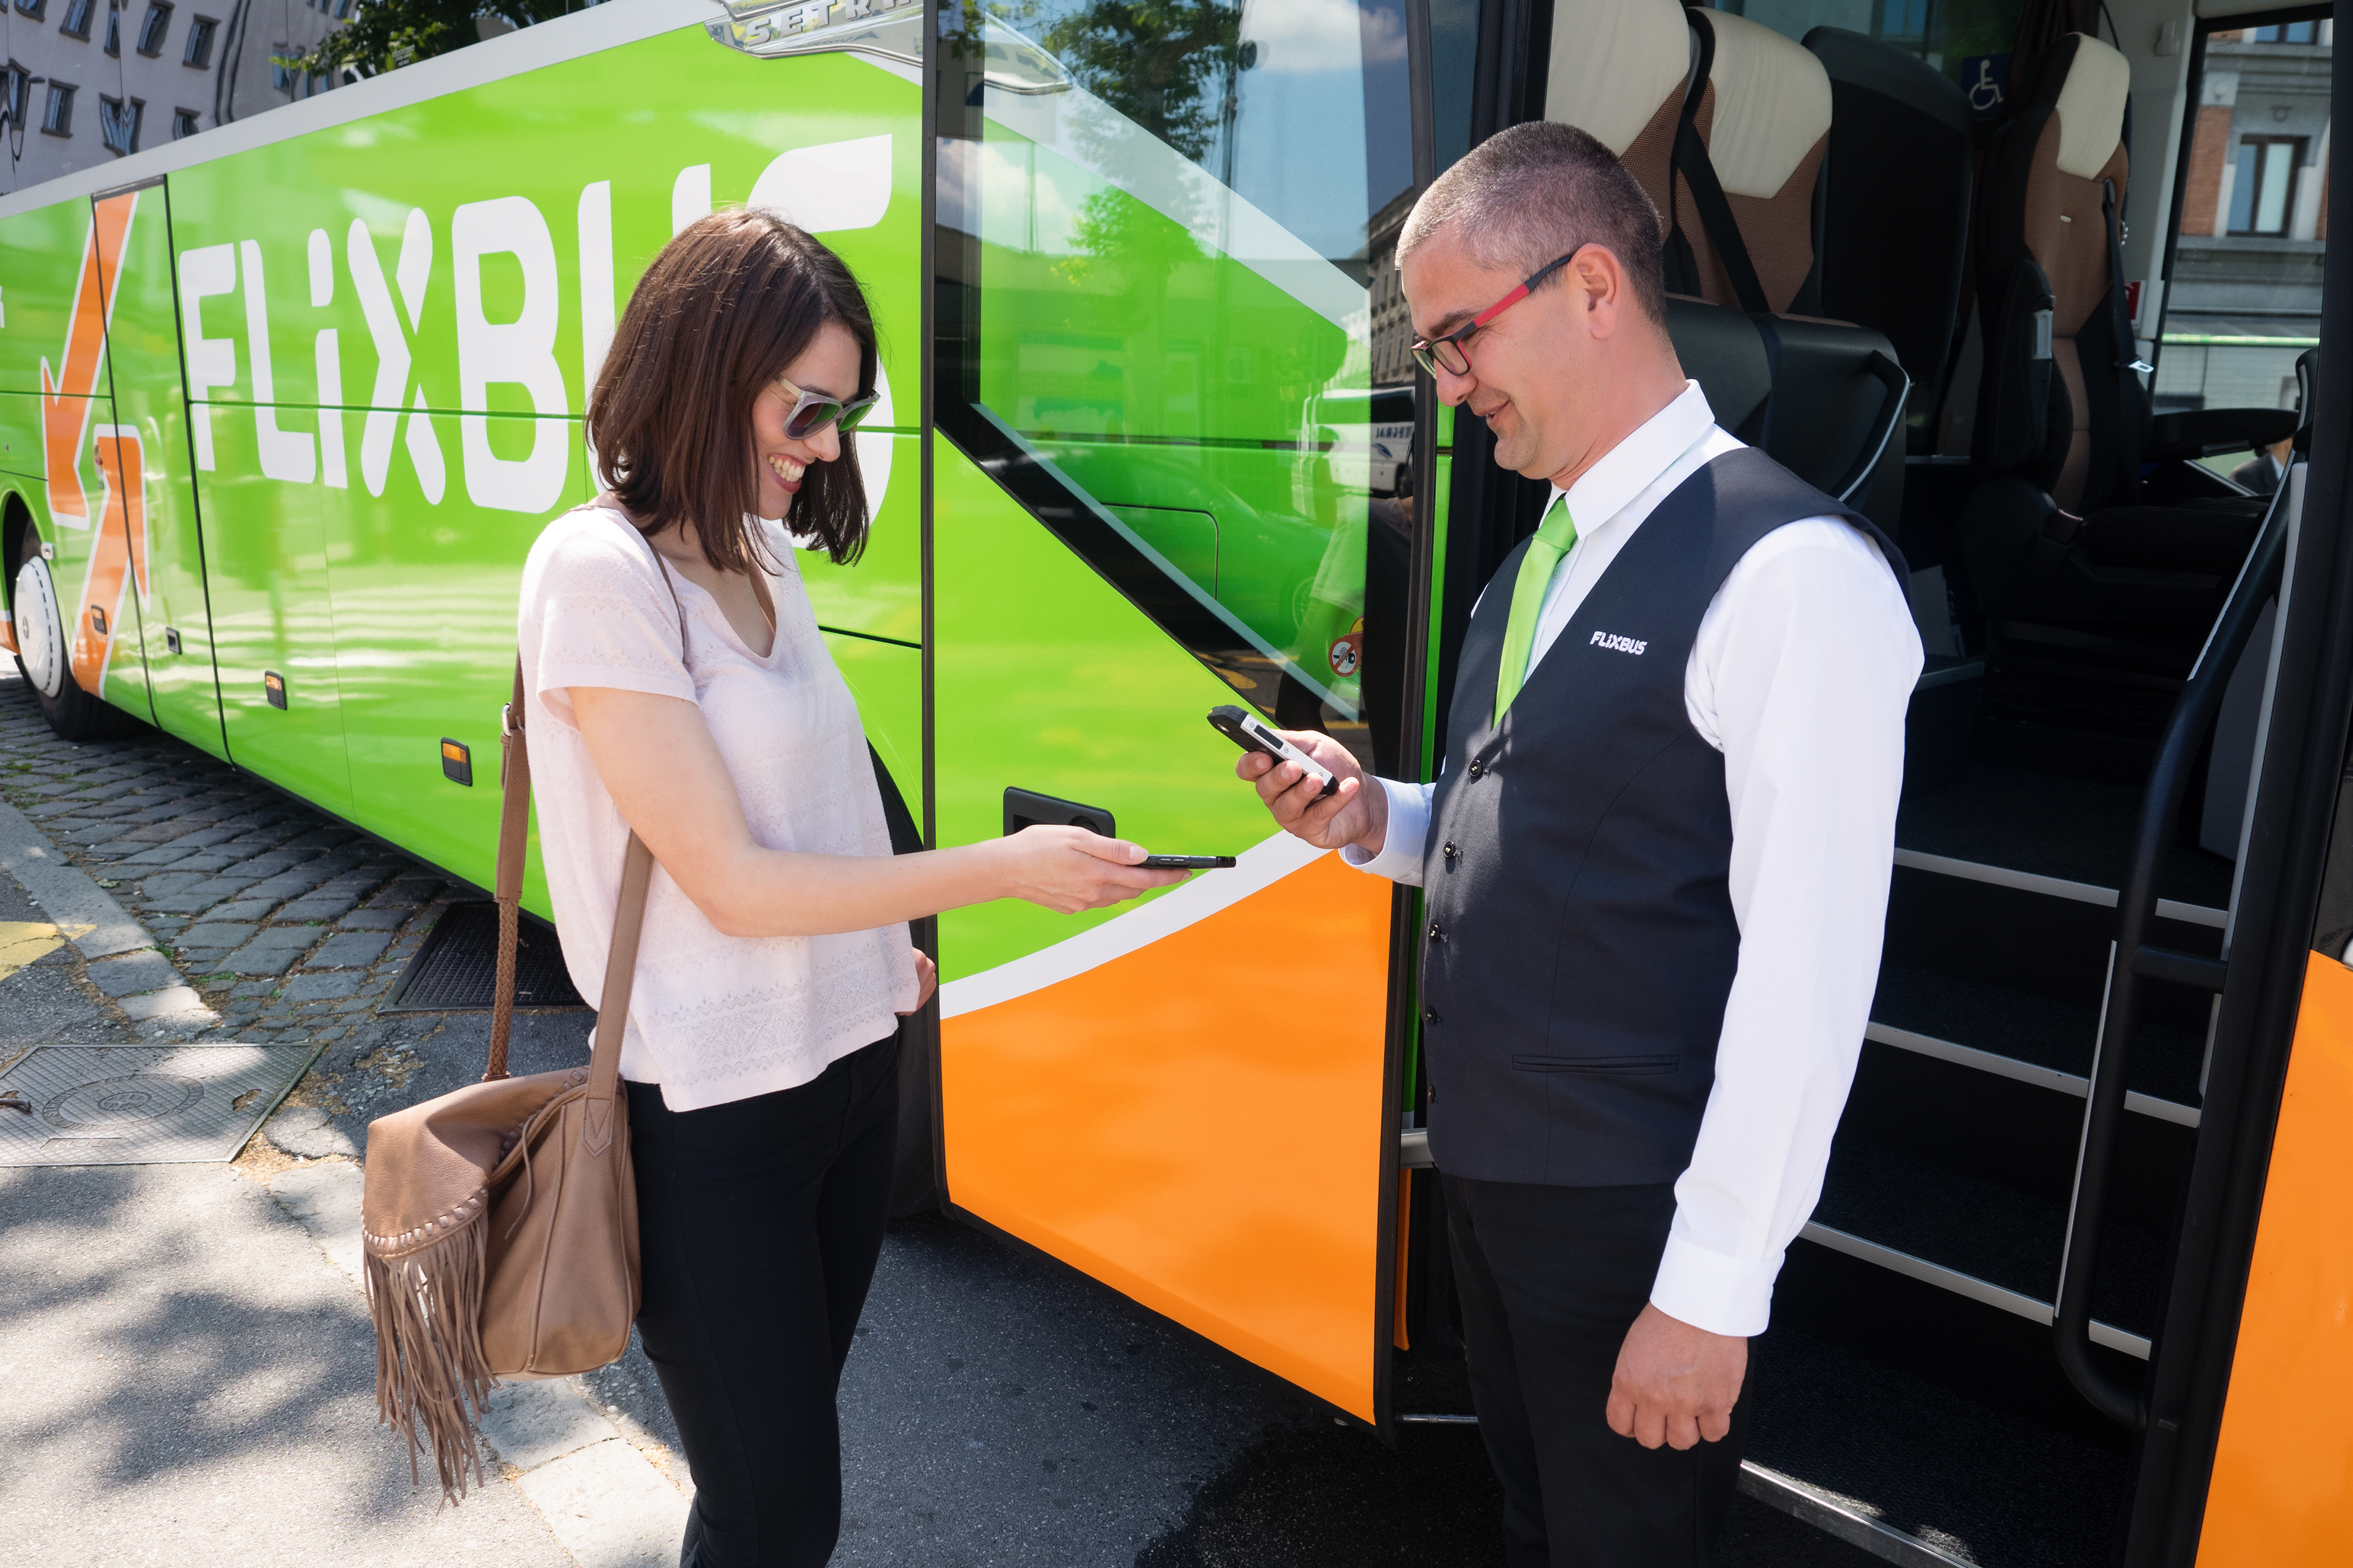 flixbus-mobile-check-in-image-free-for-editorial_purposes.jpg